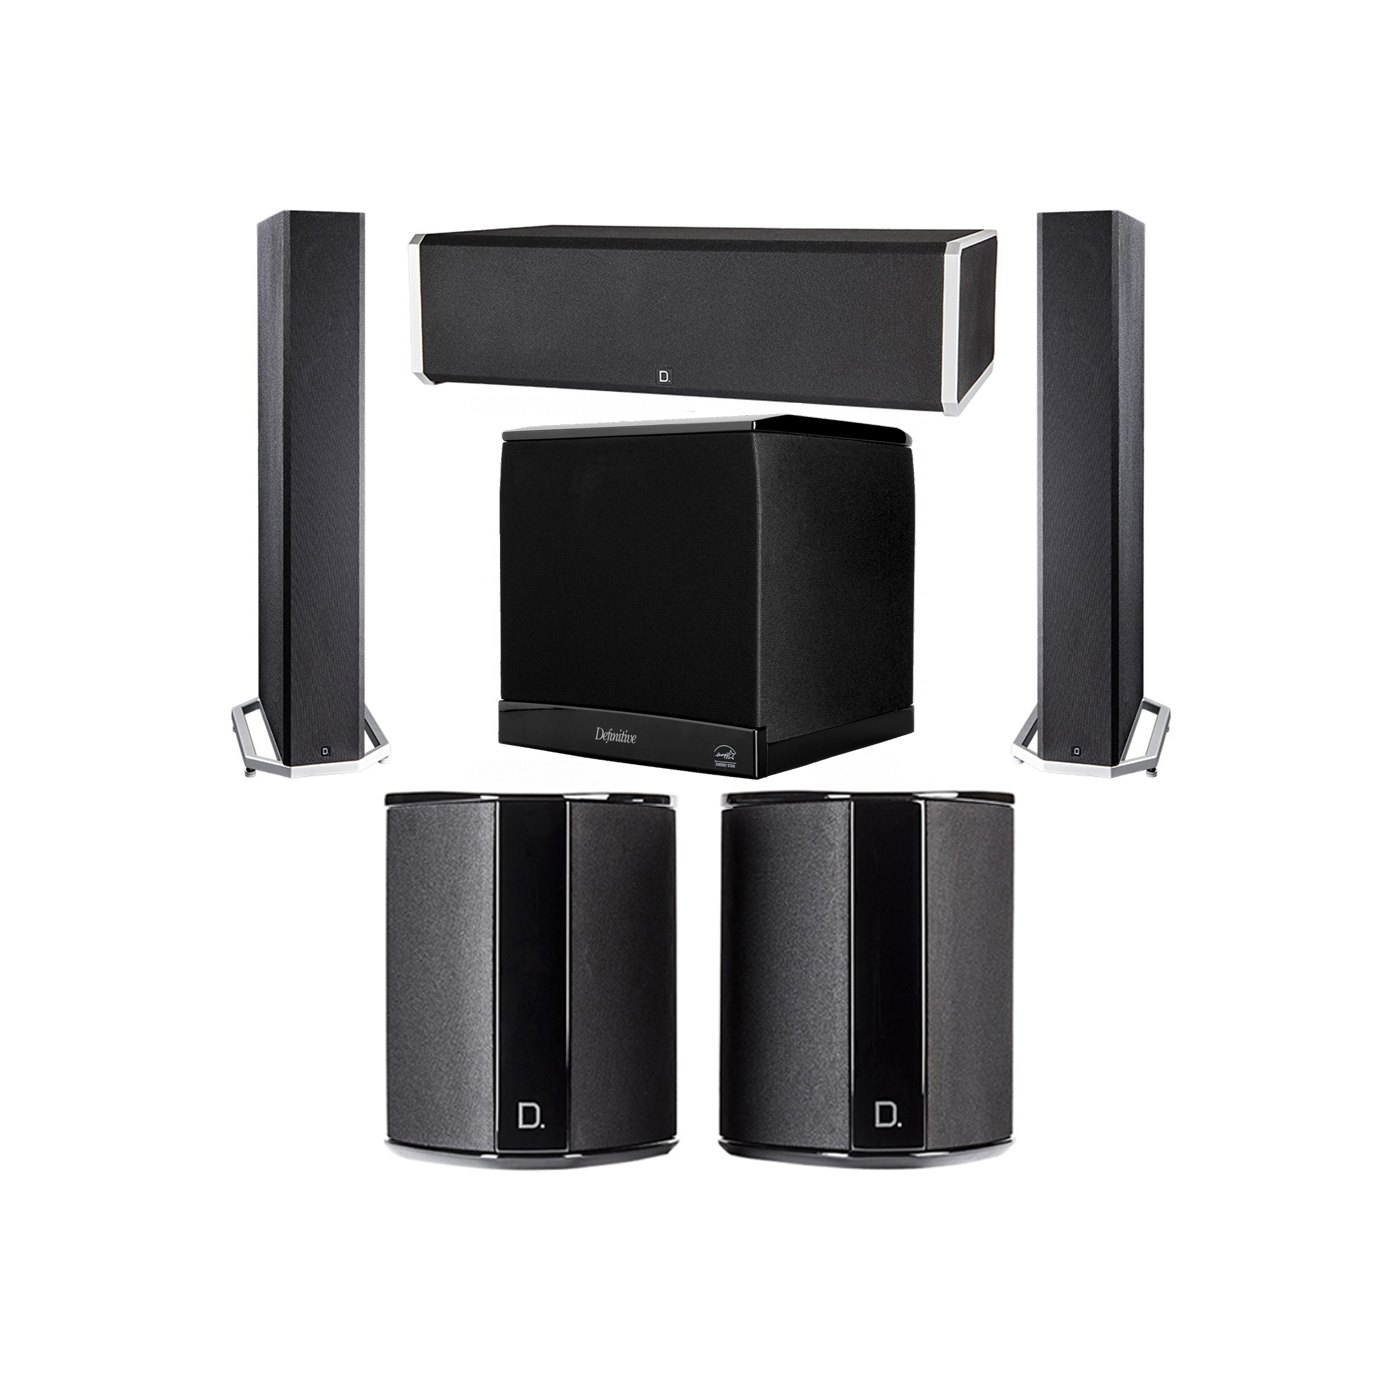 Definitive Technology 5.1 System with 2 BP9040 Tower Speakers, 1 CS9060 Center Channel Speaker, 2 SR9040 Surround Speaker, 1 Definitive Technology SuperCube 4000 Powered Subwoofer